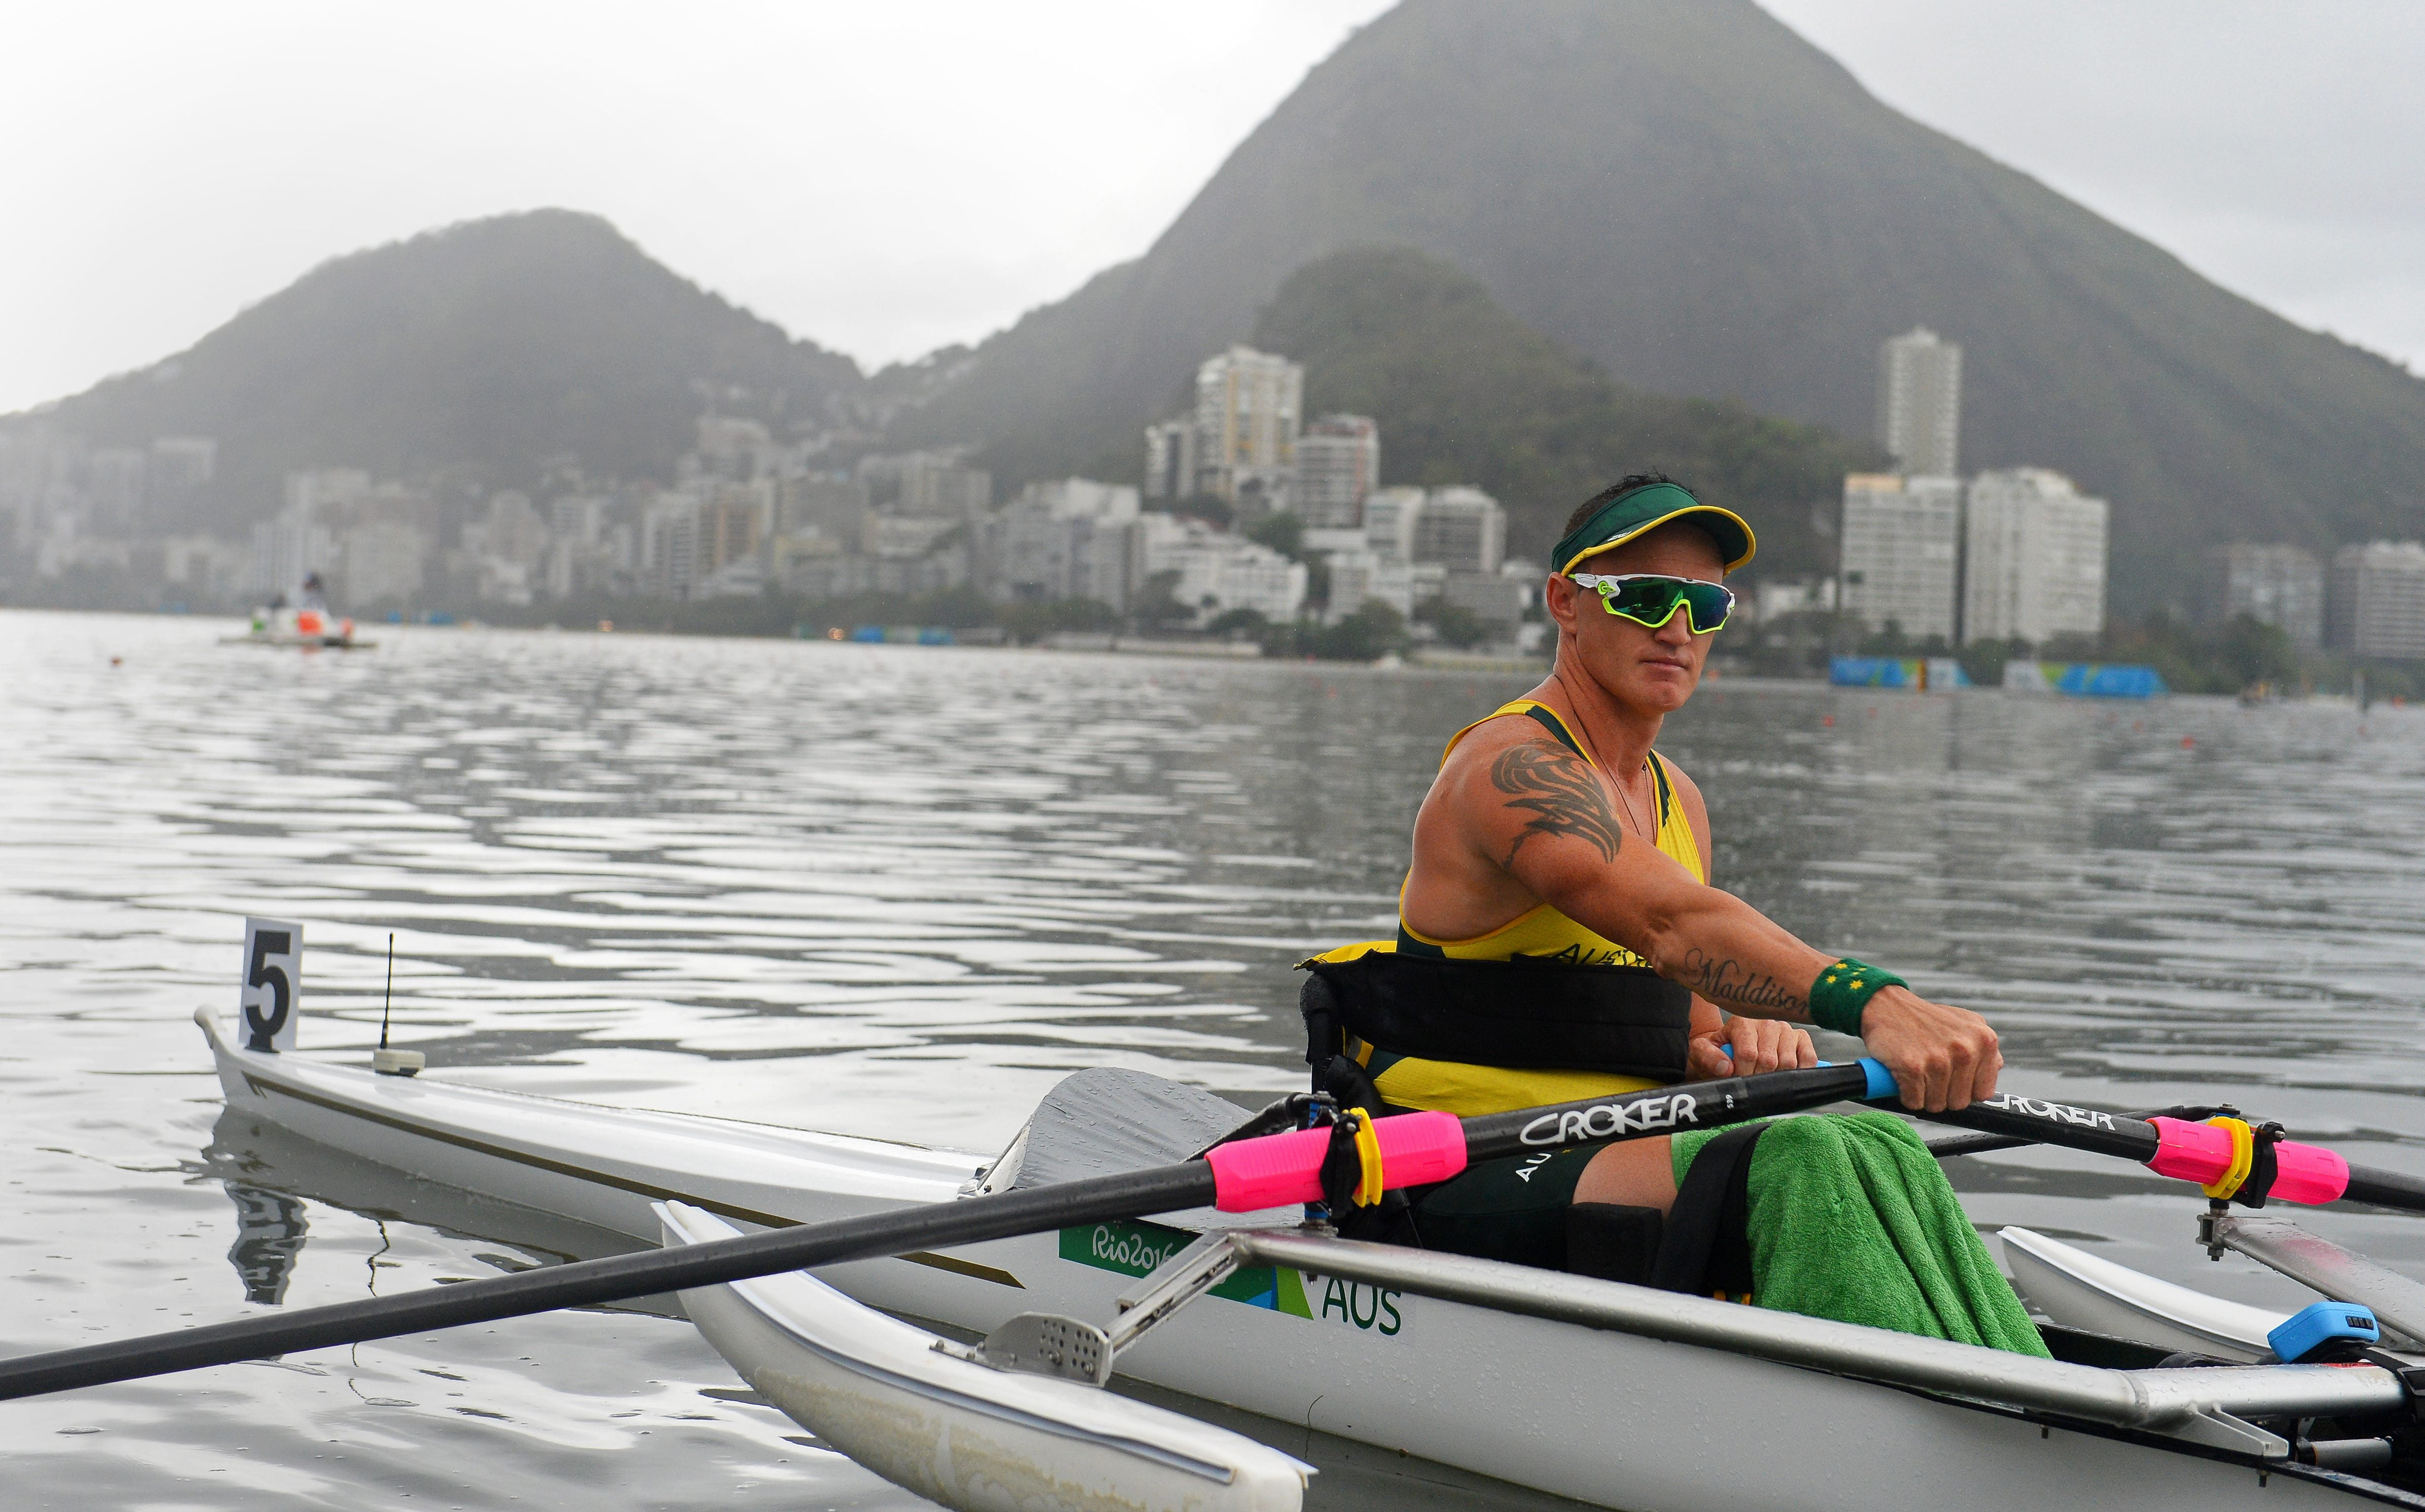 Five-time World Rowing champion Horrie crowned Para-rower of the Year at the Hancock Prospecting 2018 Rower of the Year Awards